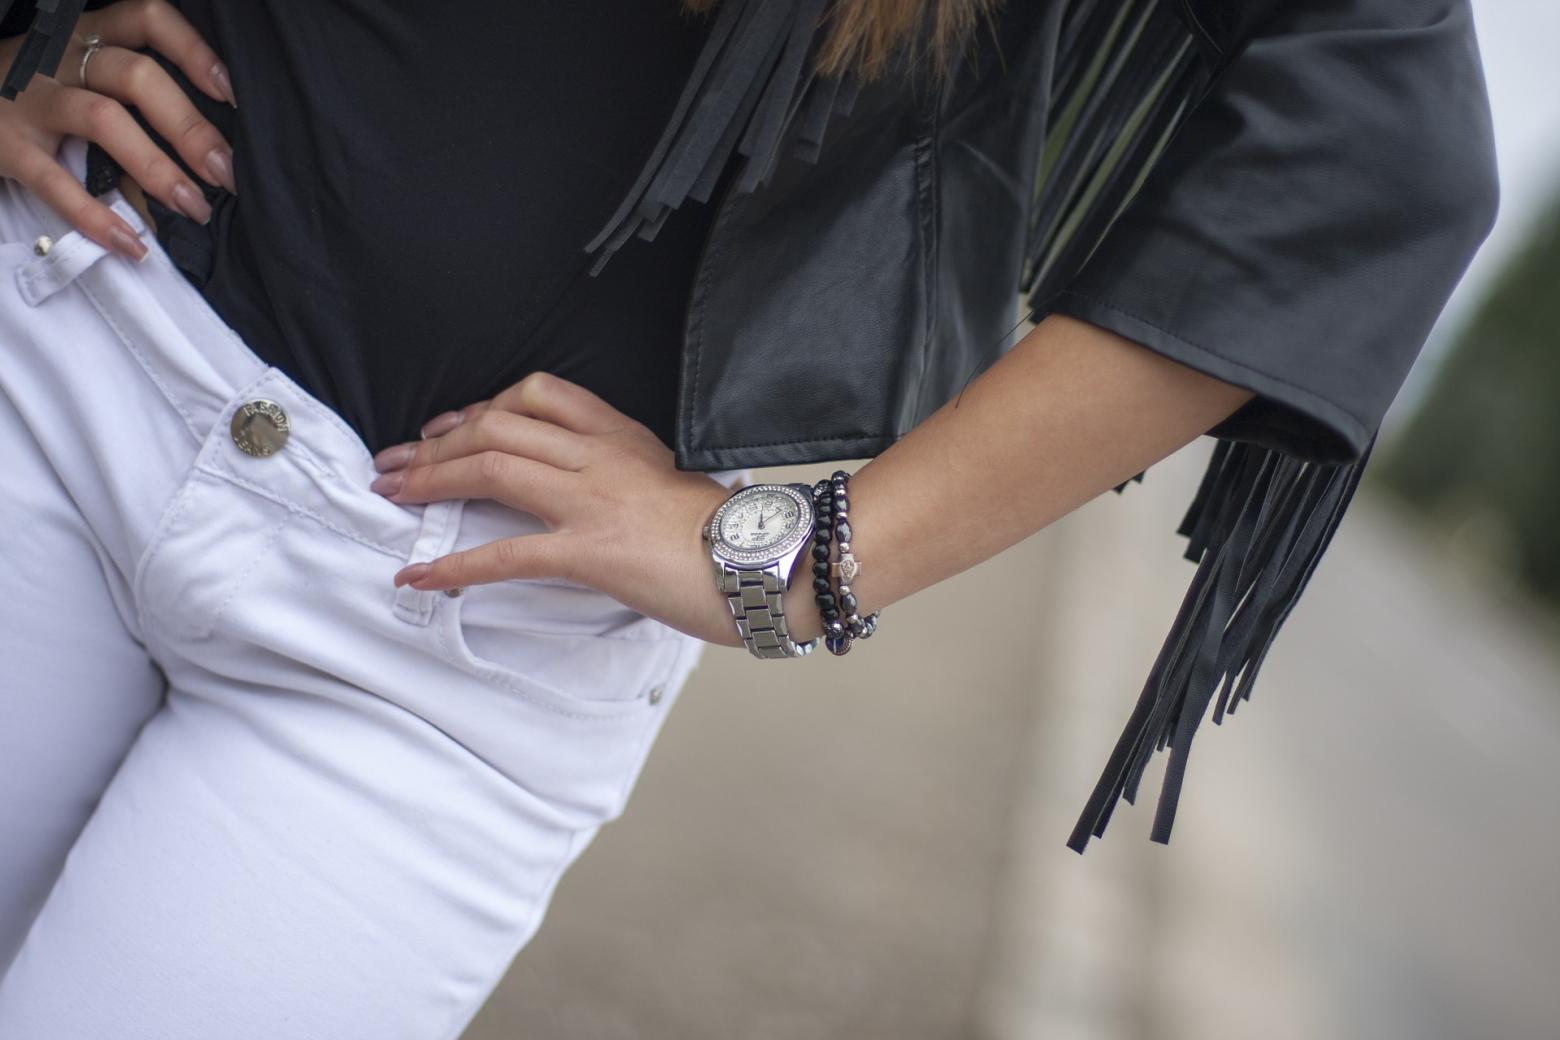 Dress up Yourself with The Best Accessories – Fashion Watches